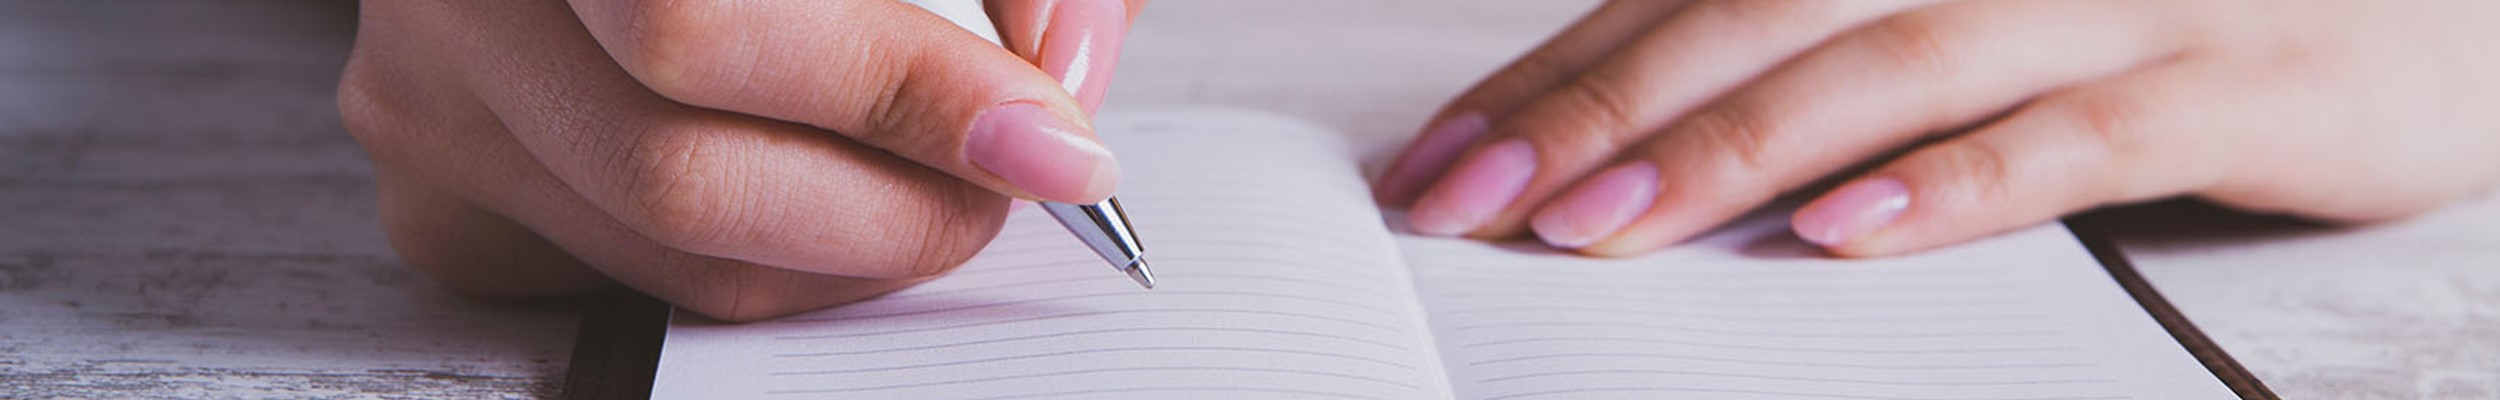 Woman writing in a lined notepad